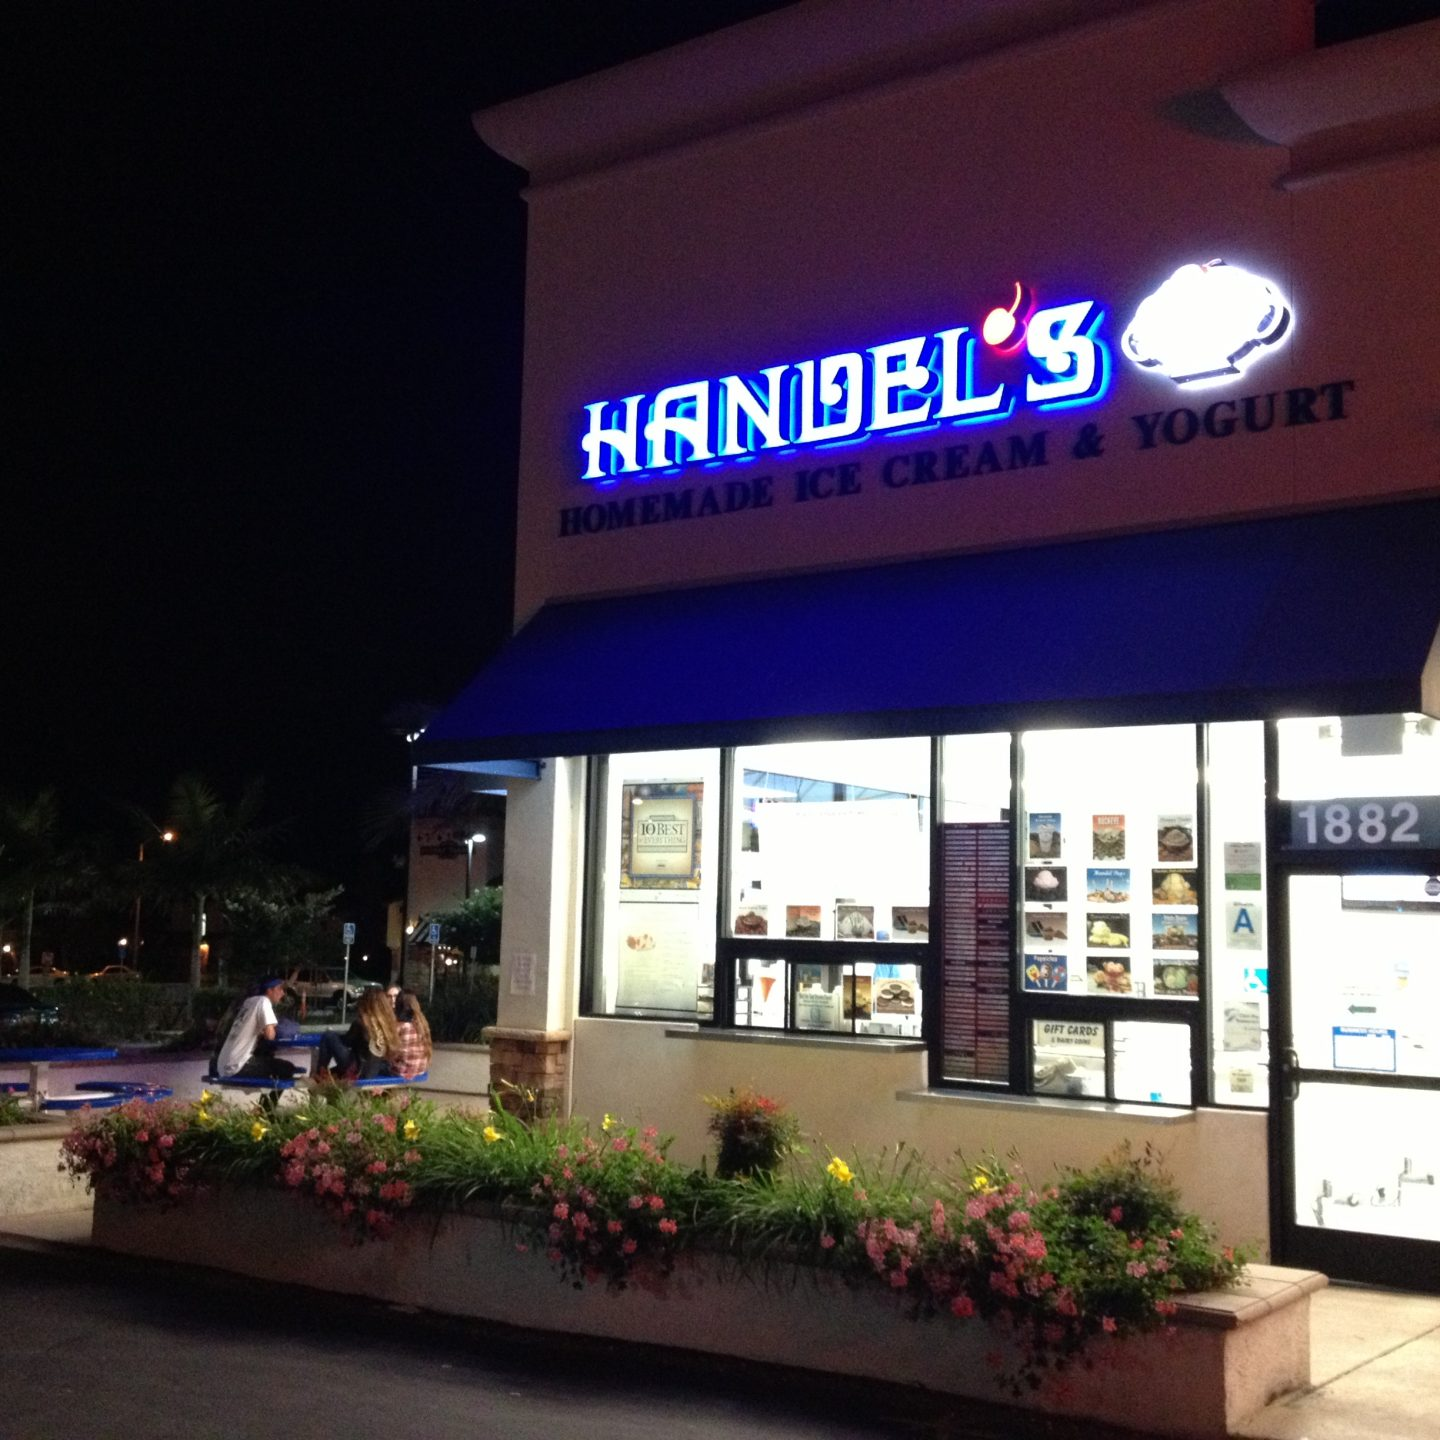 Best Ice Cream in Redondo Beach?: Handel's Homemade Ice Cream and Yogurt